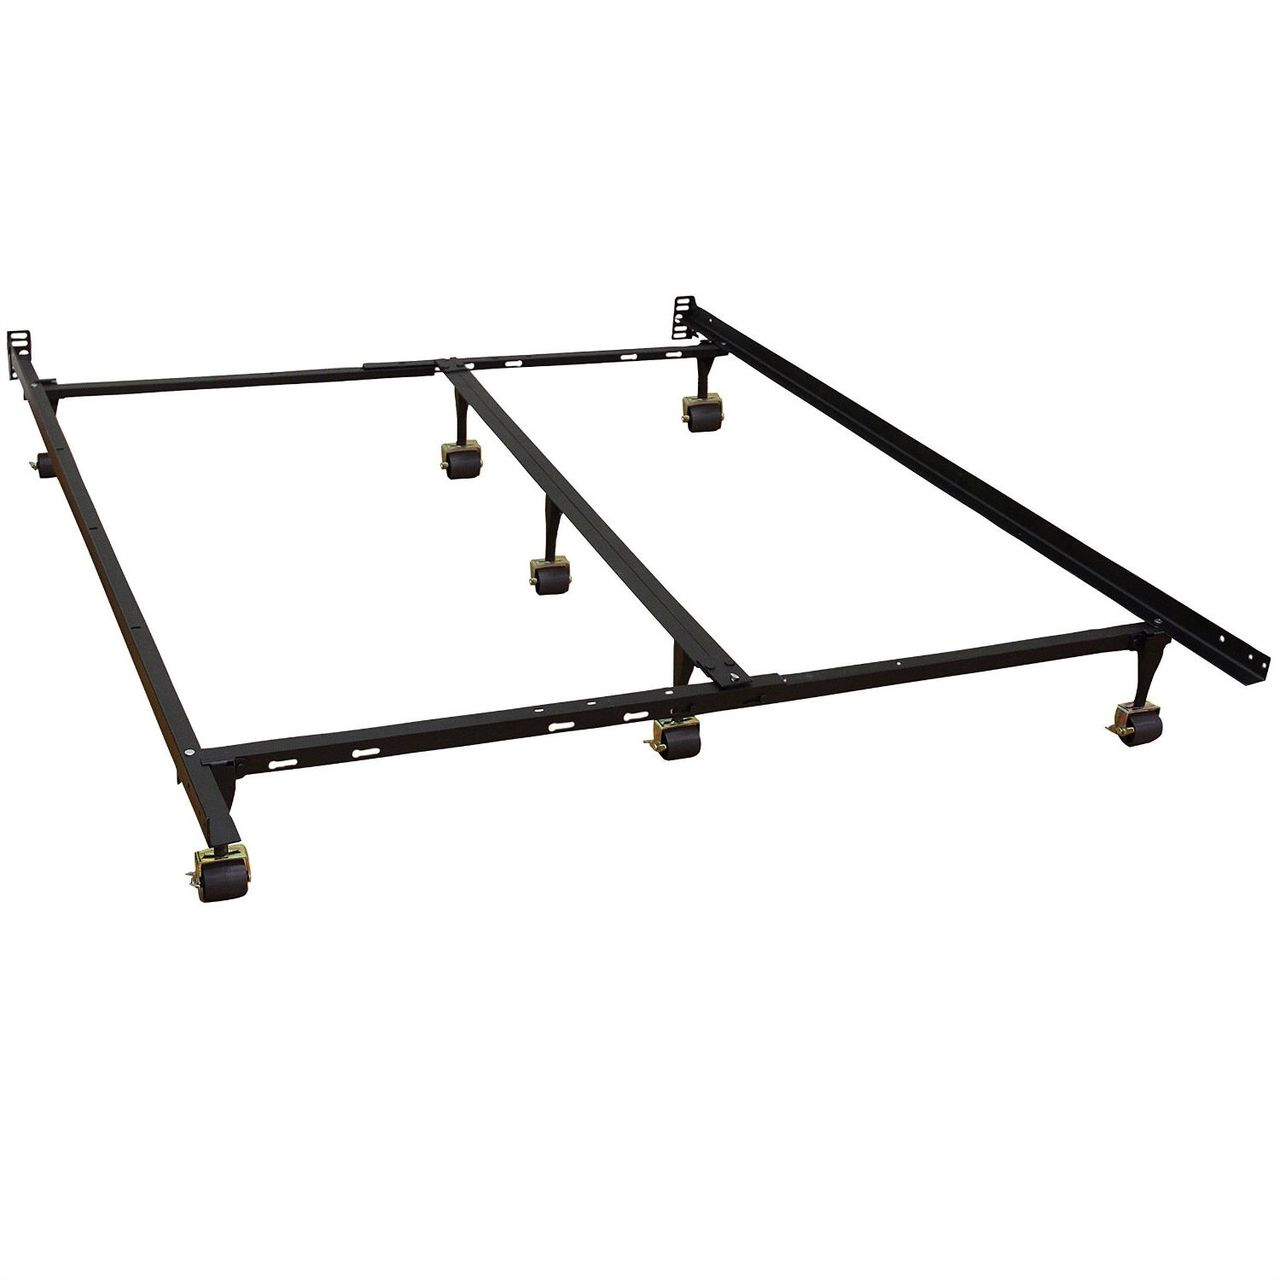 full sturdy metal frame 7 legs locking casters headboard brackets - Metal Queen Size Bed Frame